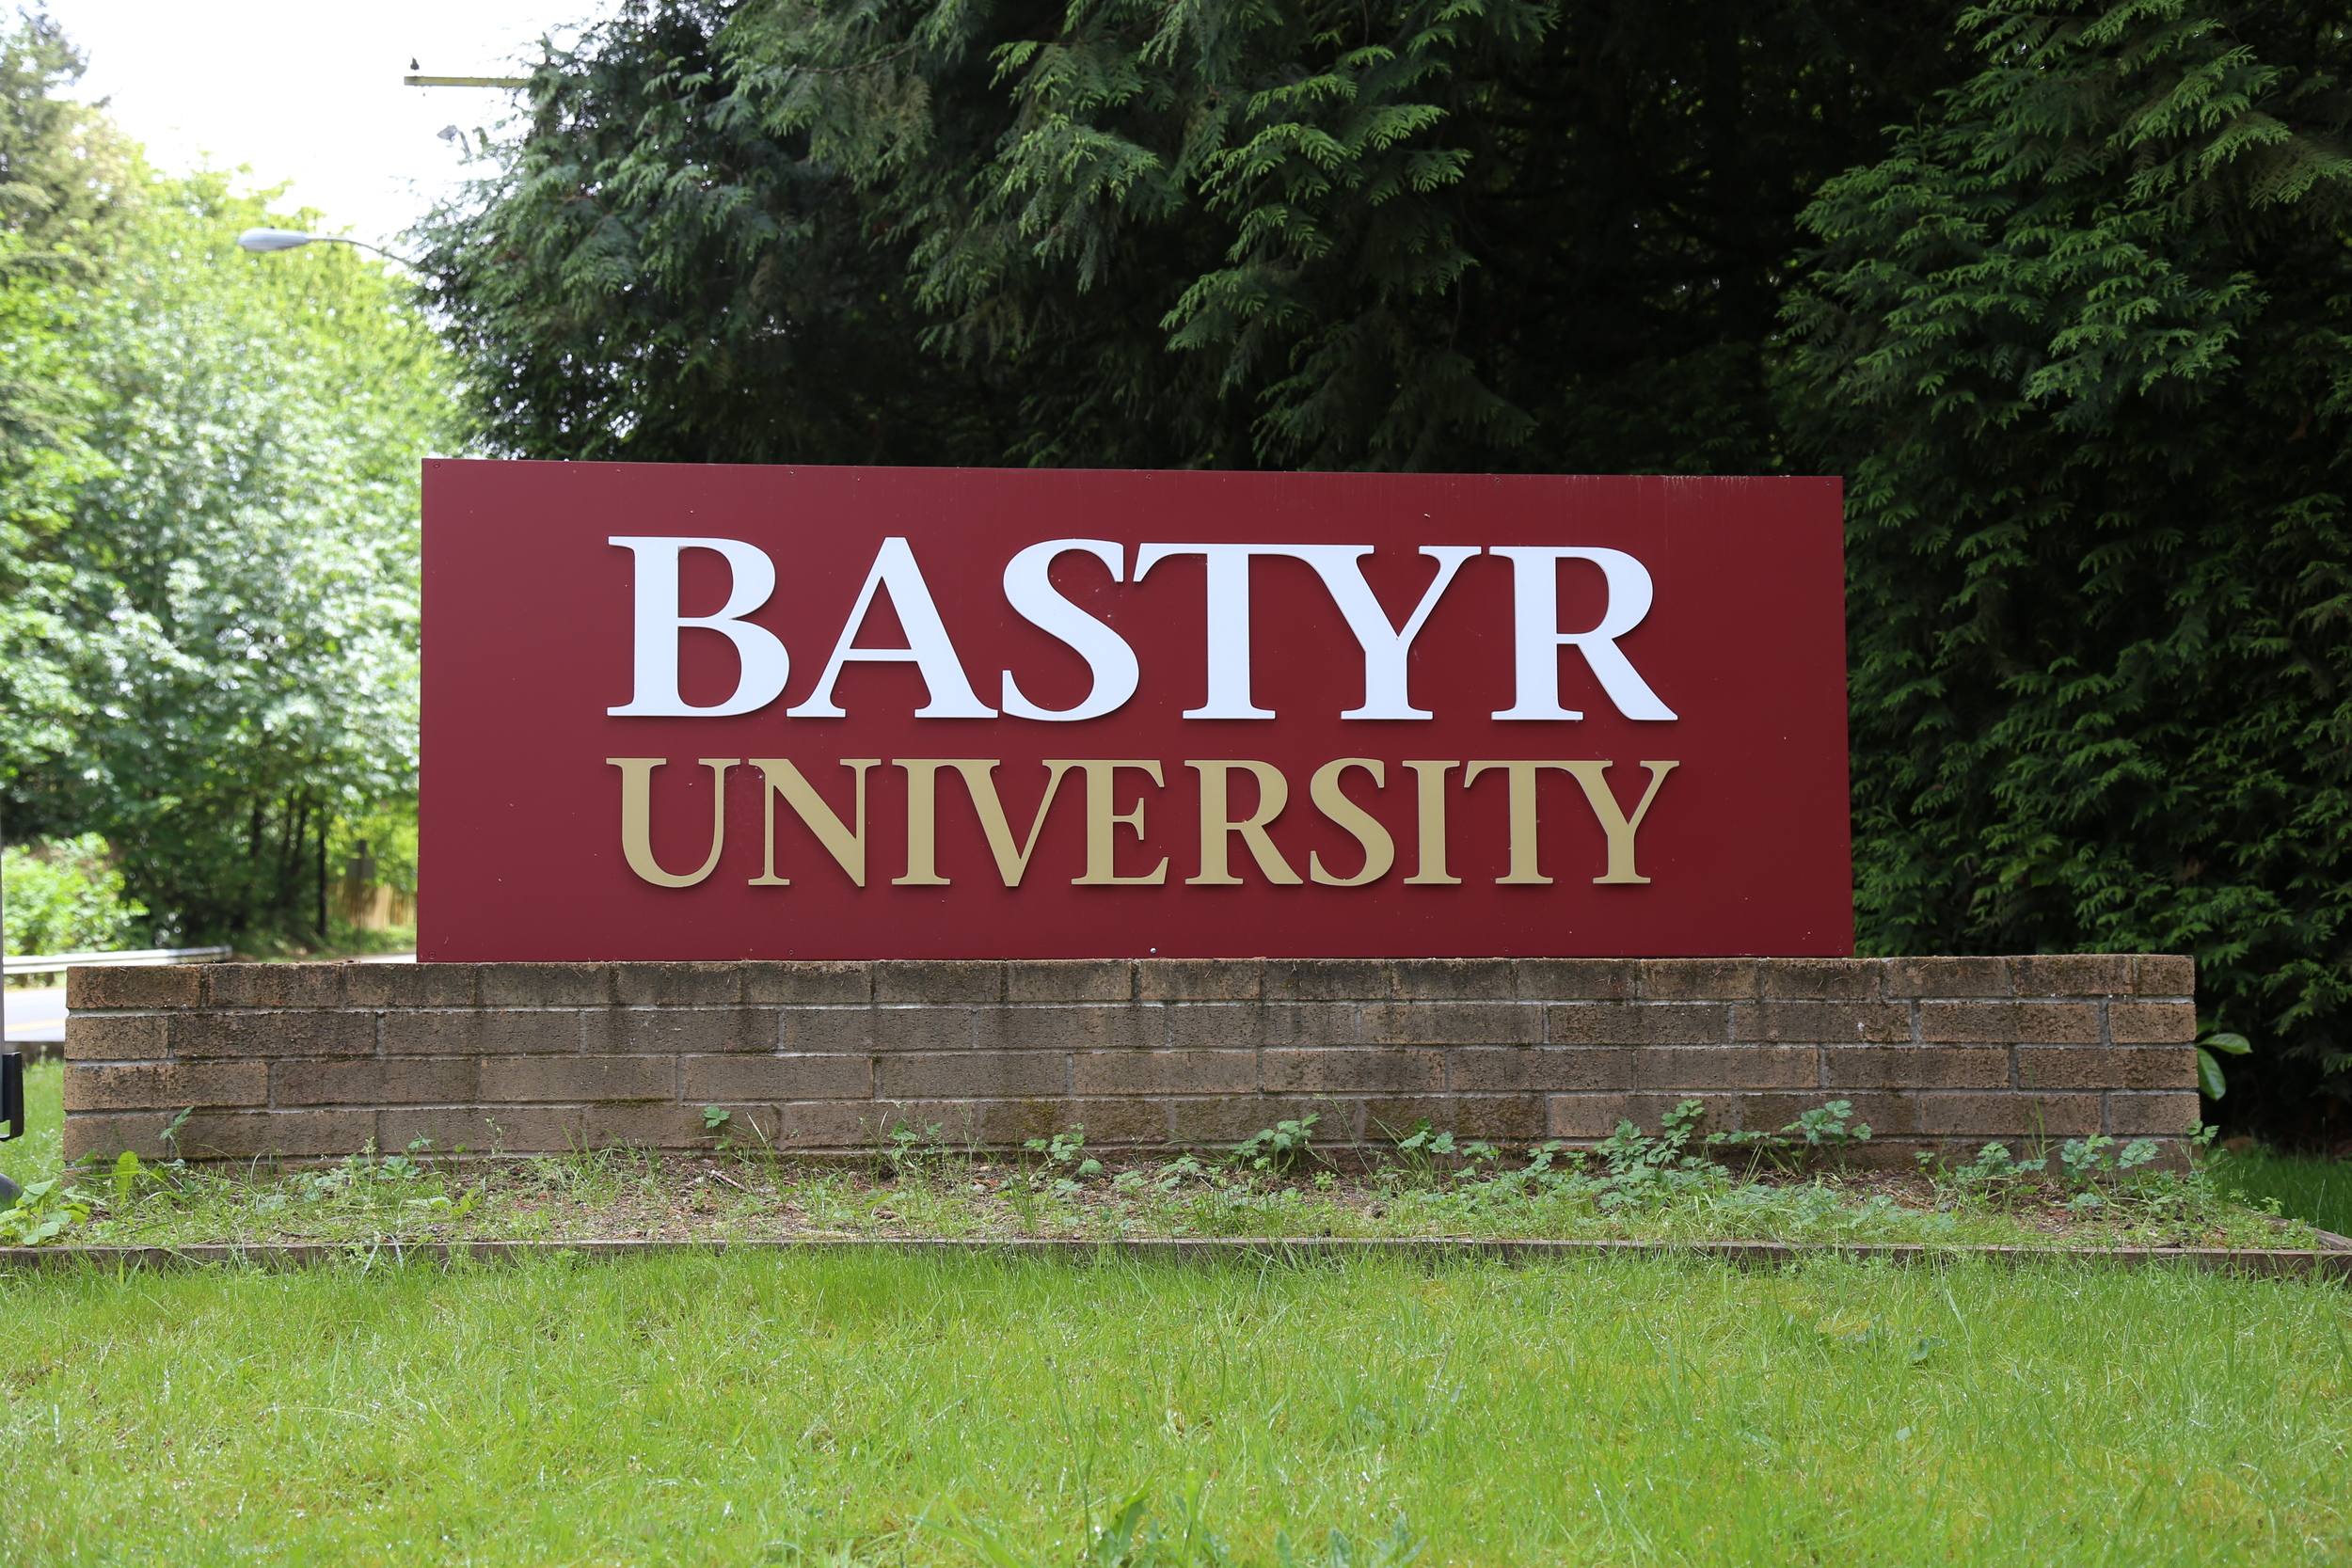 Welcome to Bastyr